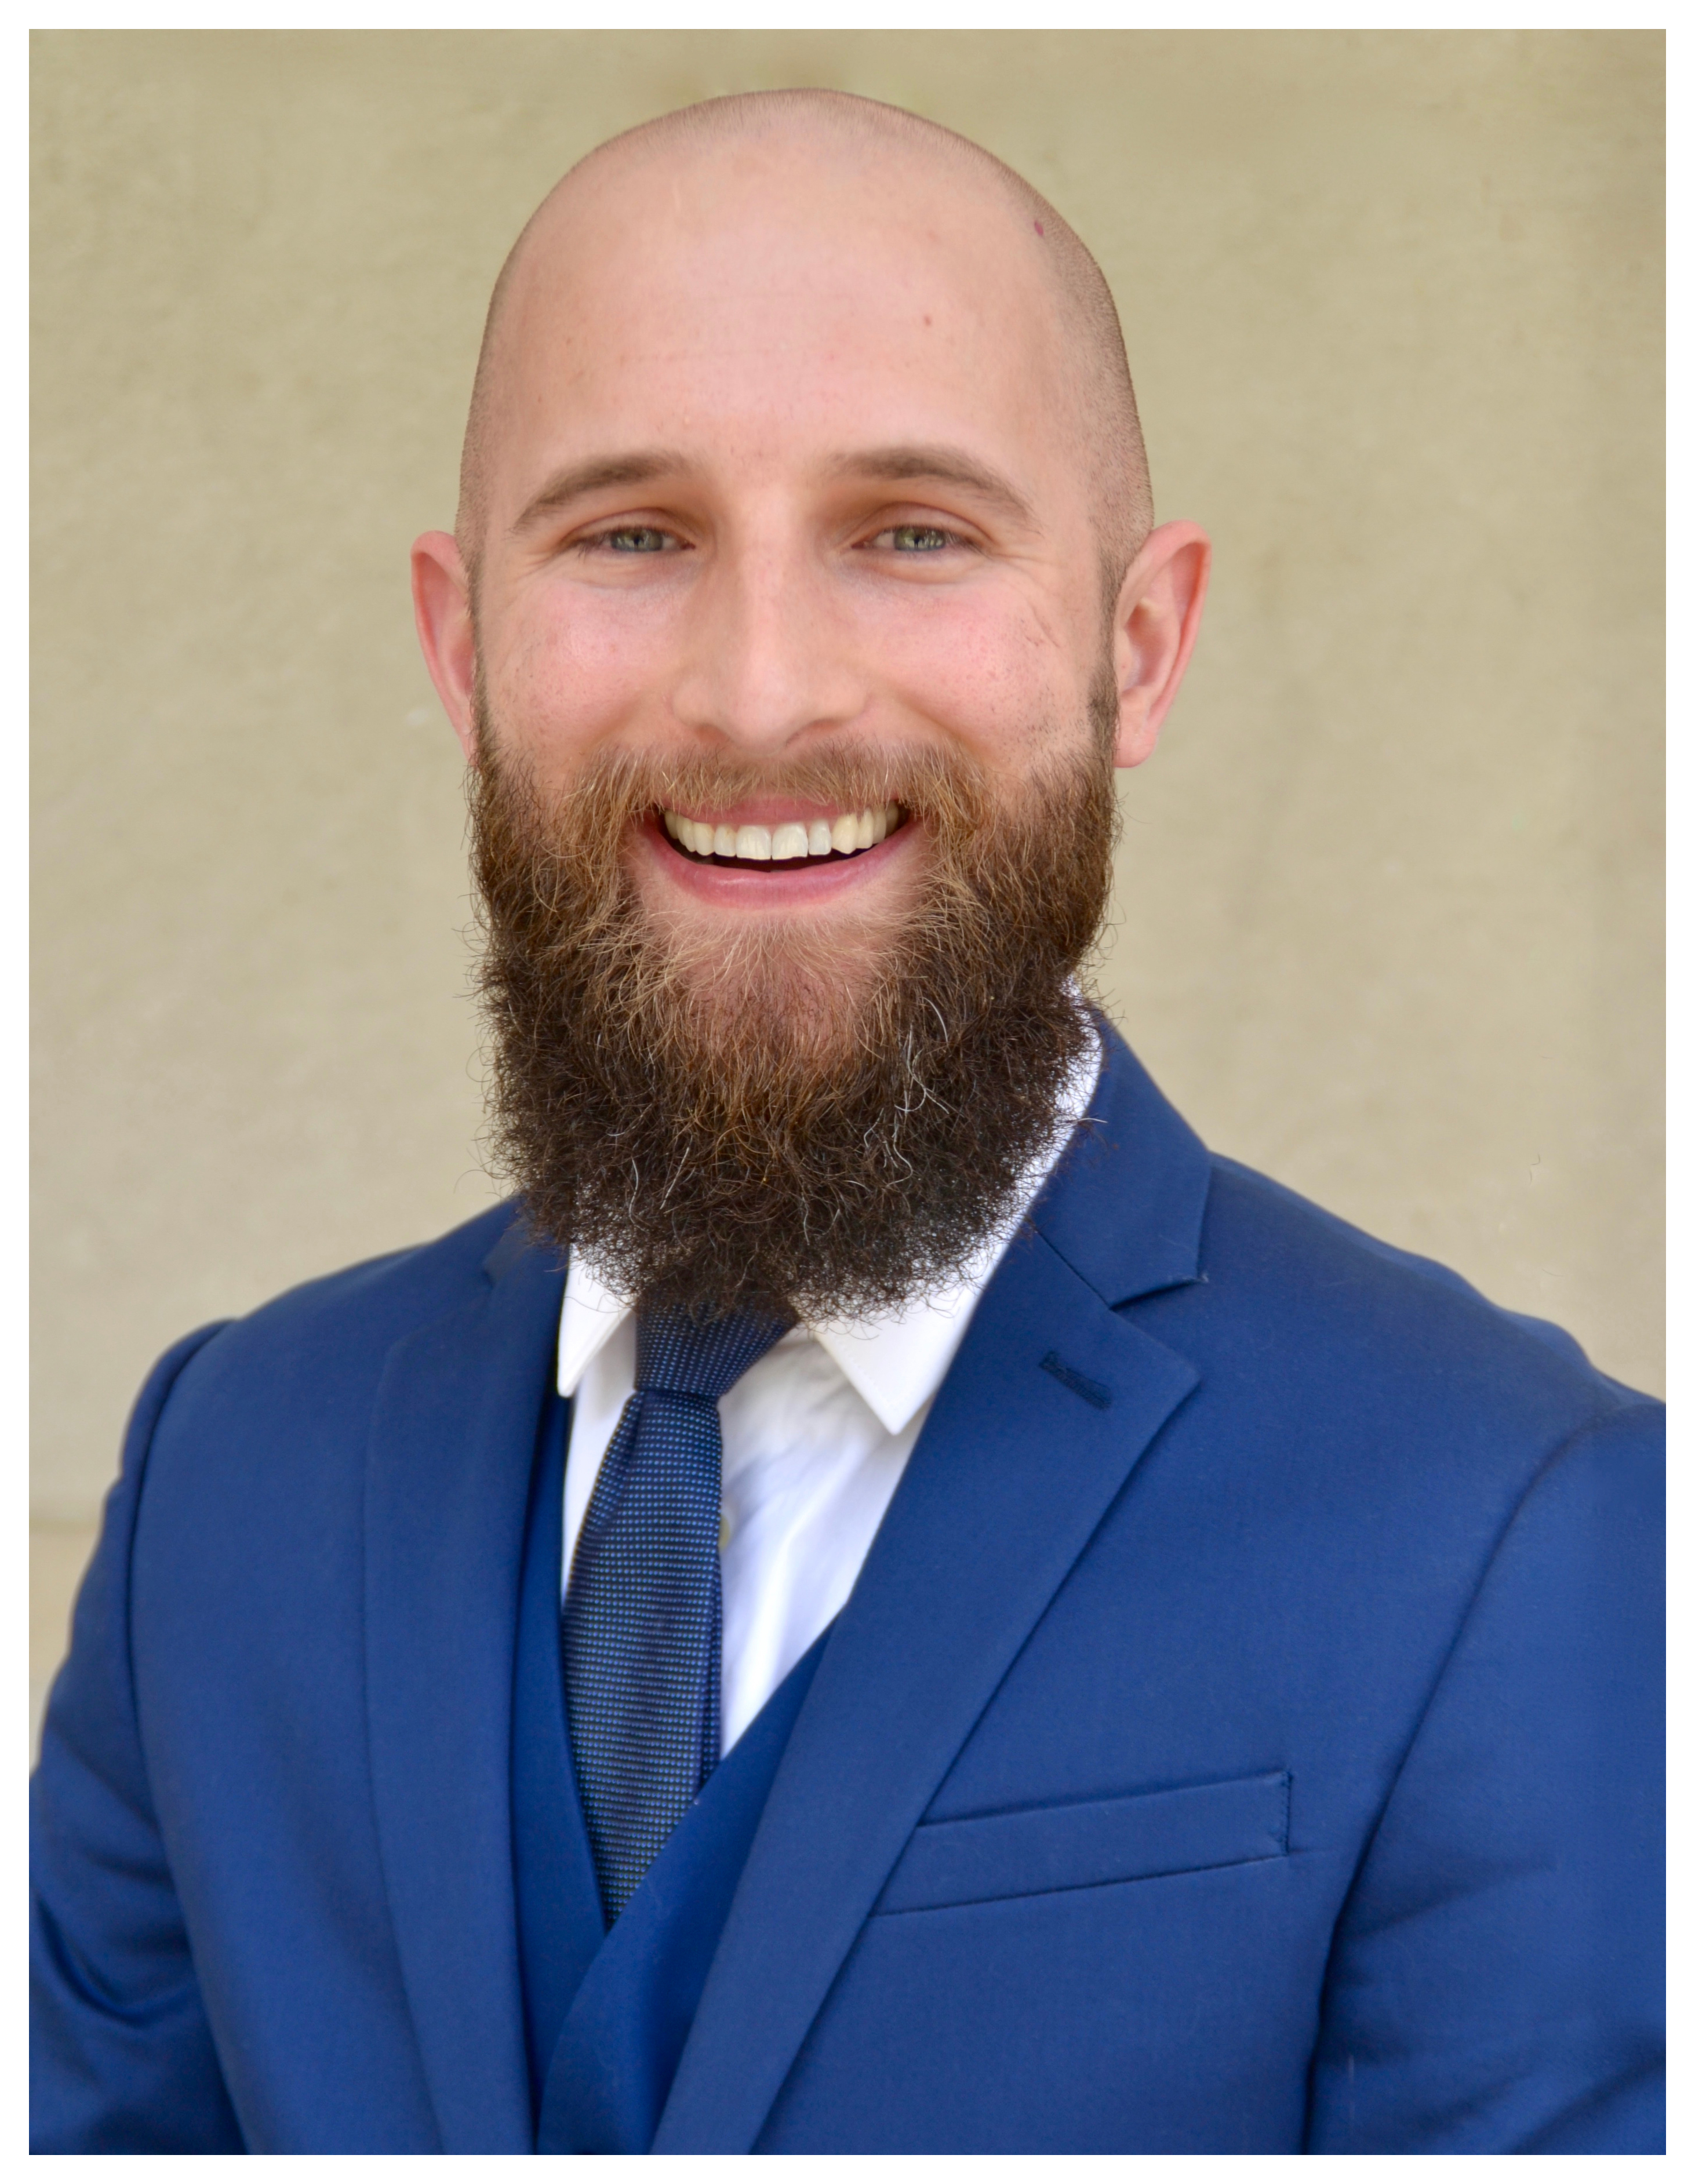 PAs Promoting the Profession: Cory Nash - American